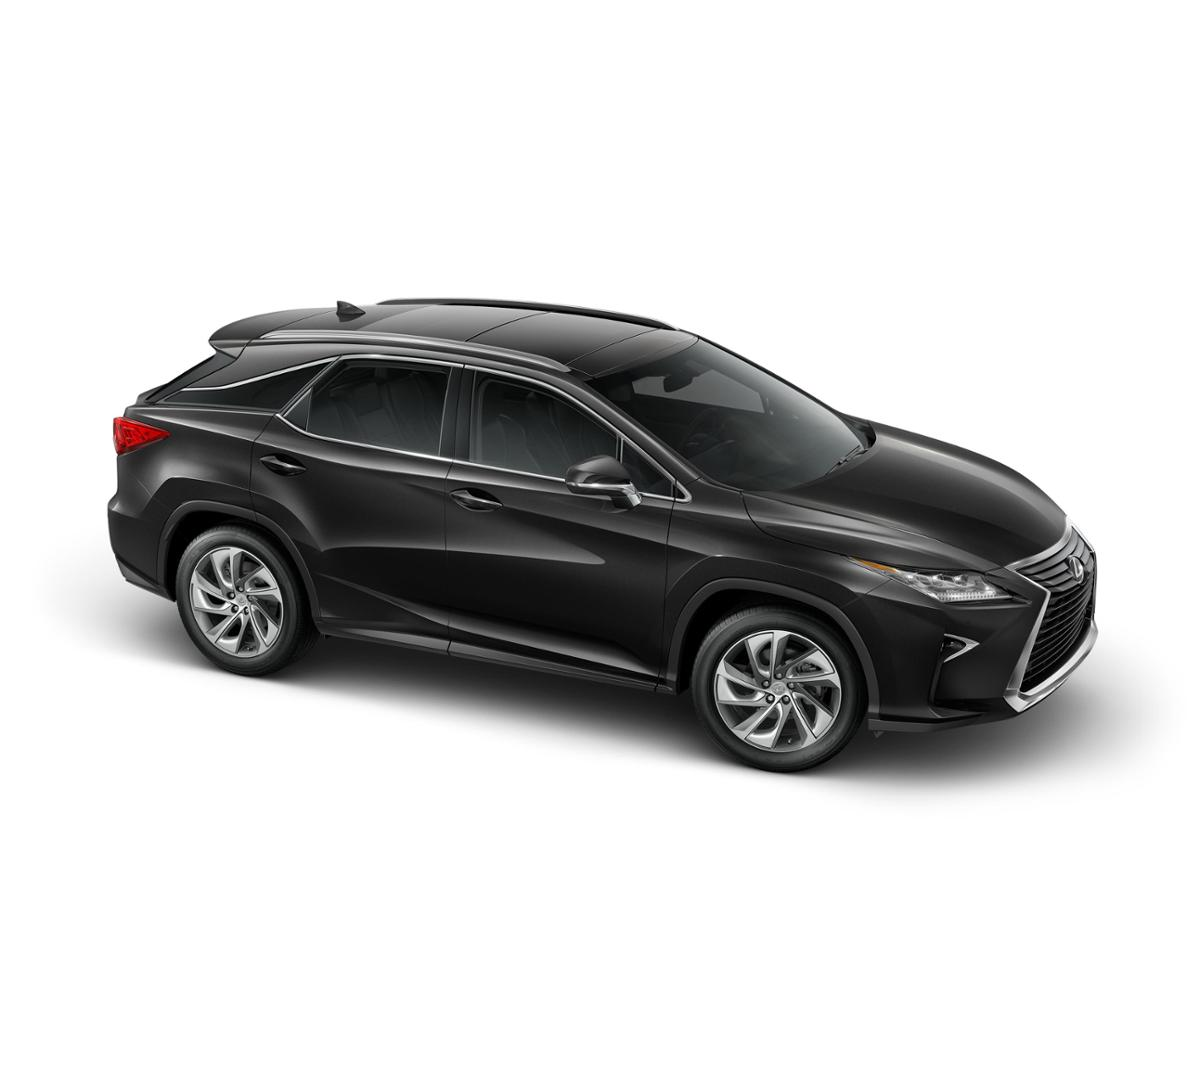 New Caviar 2018 Lexus RX 350 in Cerritos, CA | JC108775